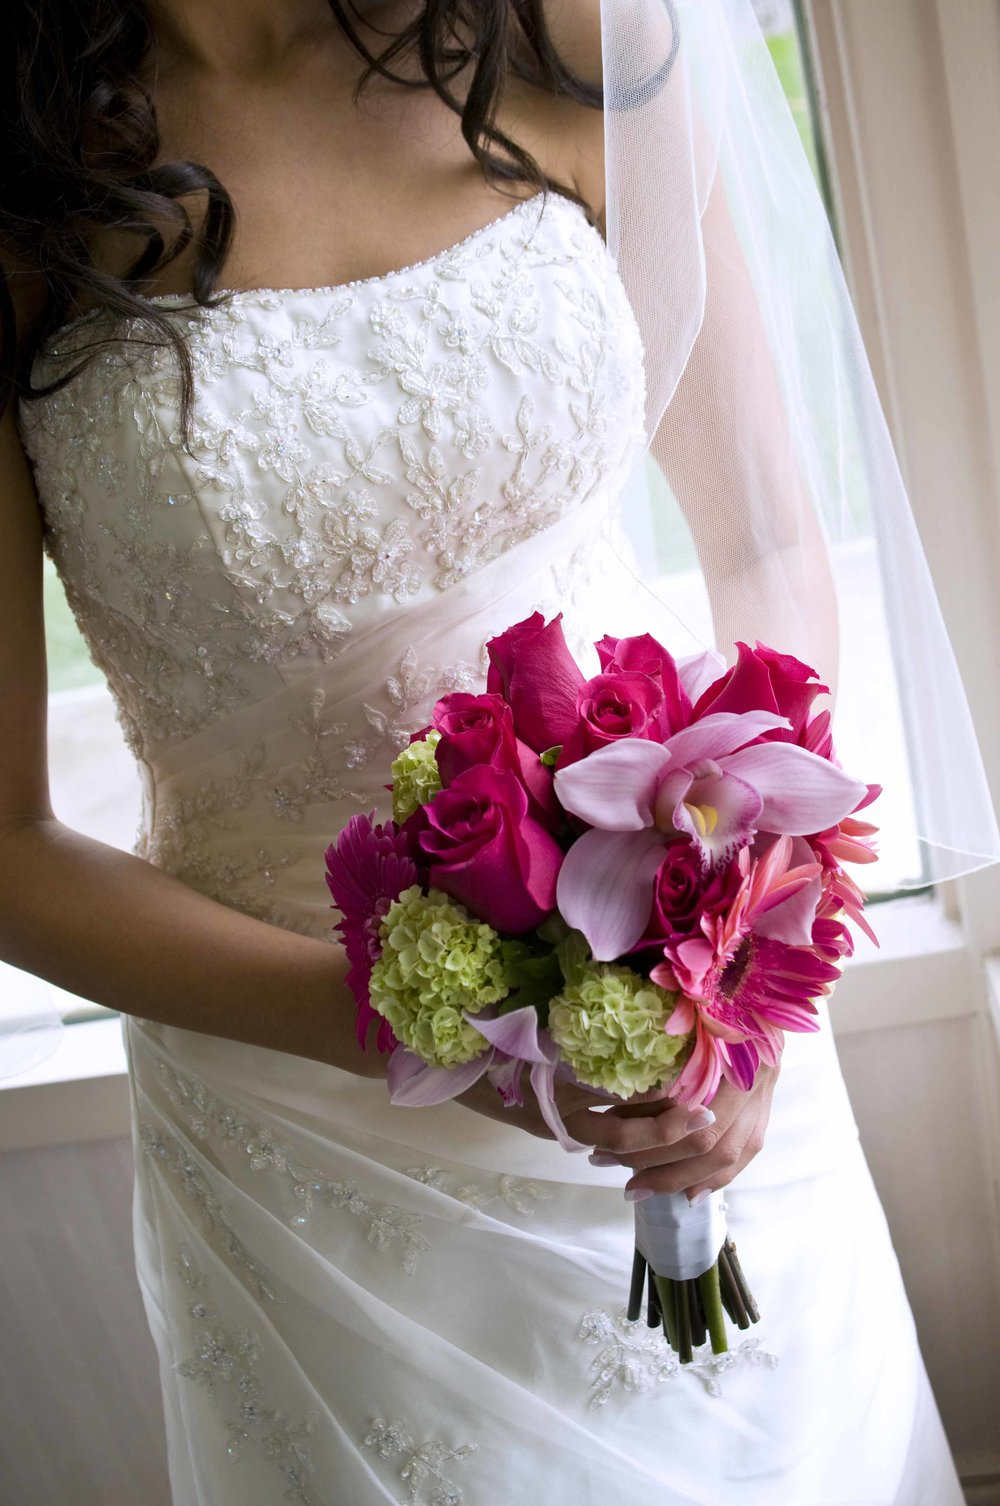 It's fast, easy, and free to deliver your bouquet for flower preservation from the Springfield, IL area. Call today! 701-400-6162.